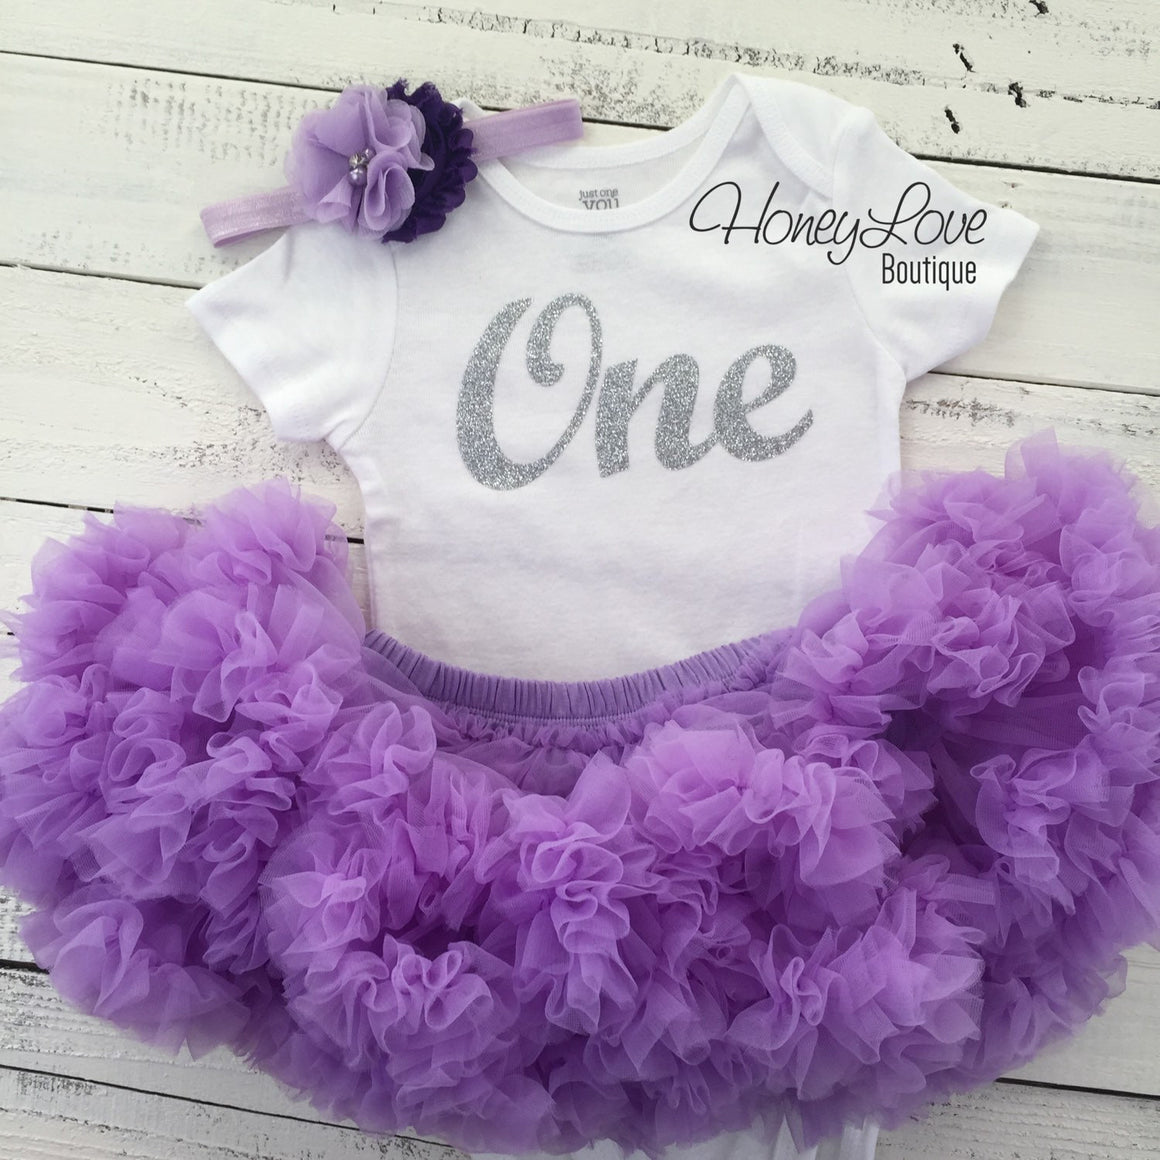 One - silver glitter number shirt, lavender purple pettiskirt tutu skirt, flower rhinestone headband First Birthday 1st Cake Smash baby girl - HoneyLoveBoutique